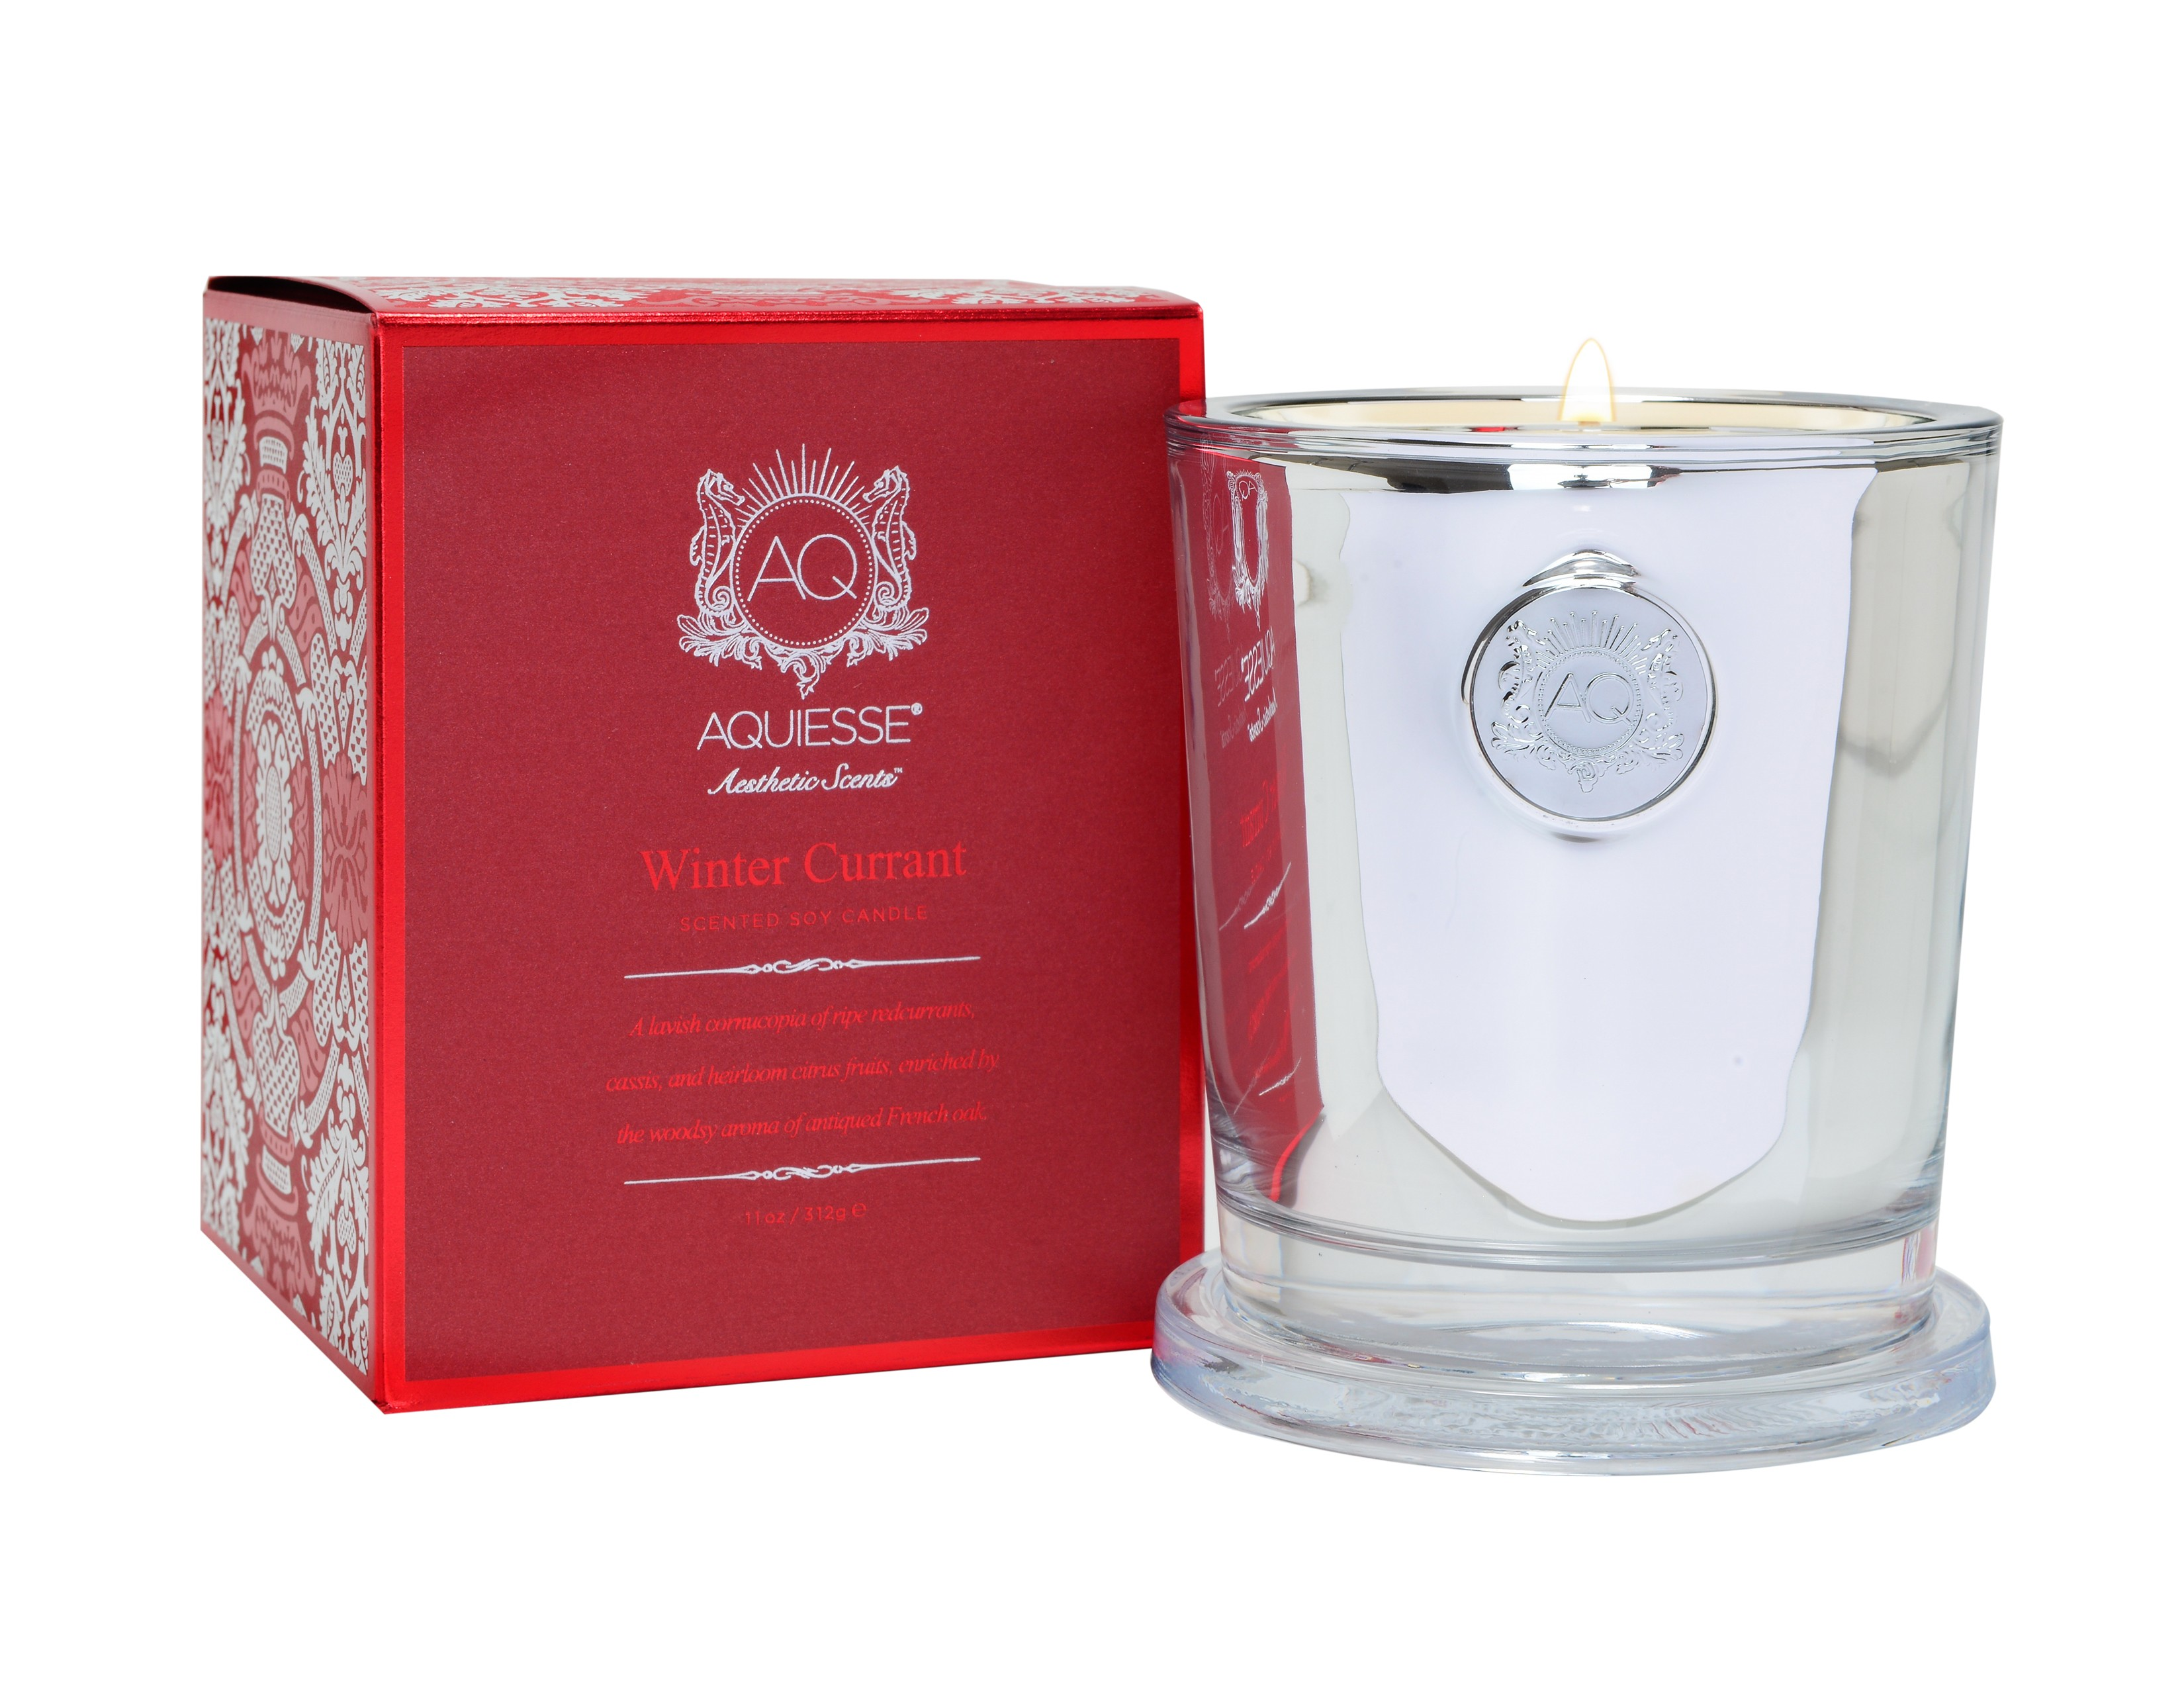 Aquiesse Winter Currant Large Holiday Candle | James Anthony Collection